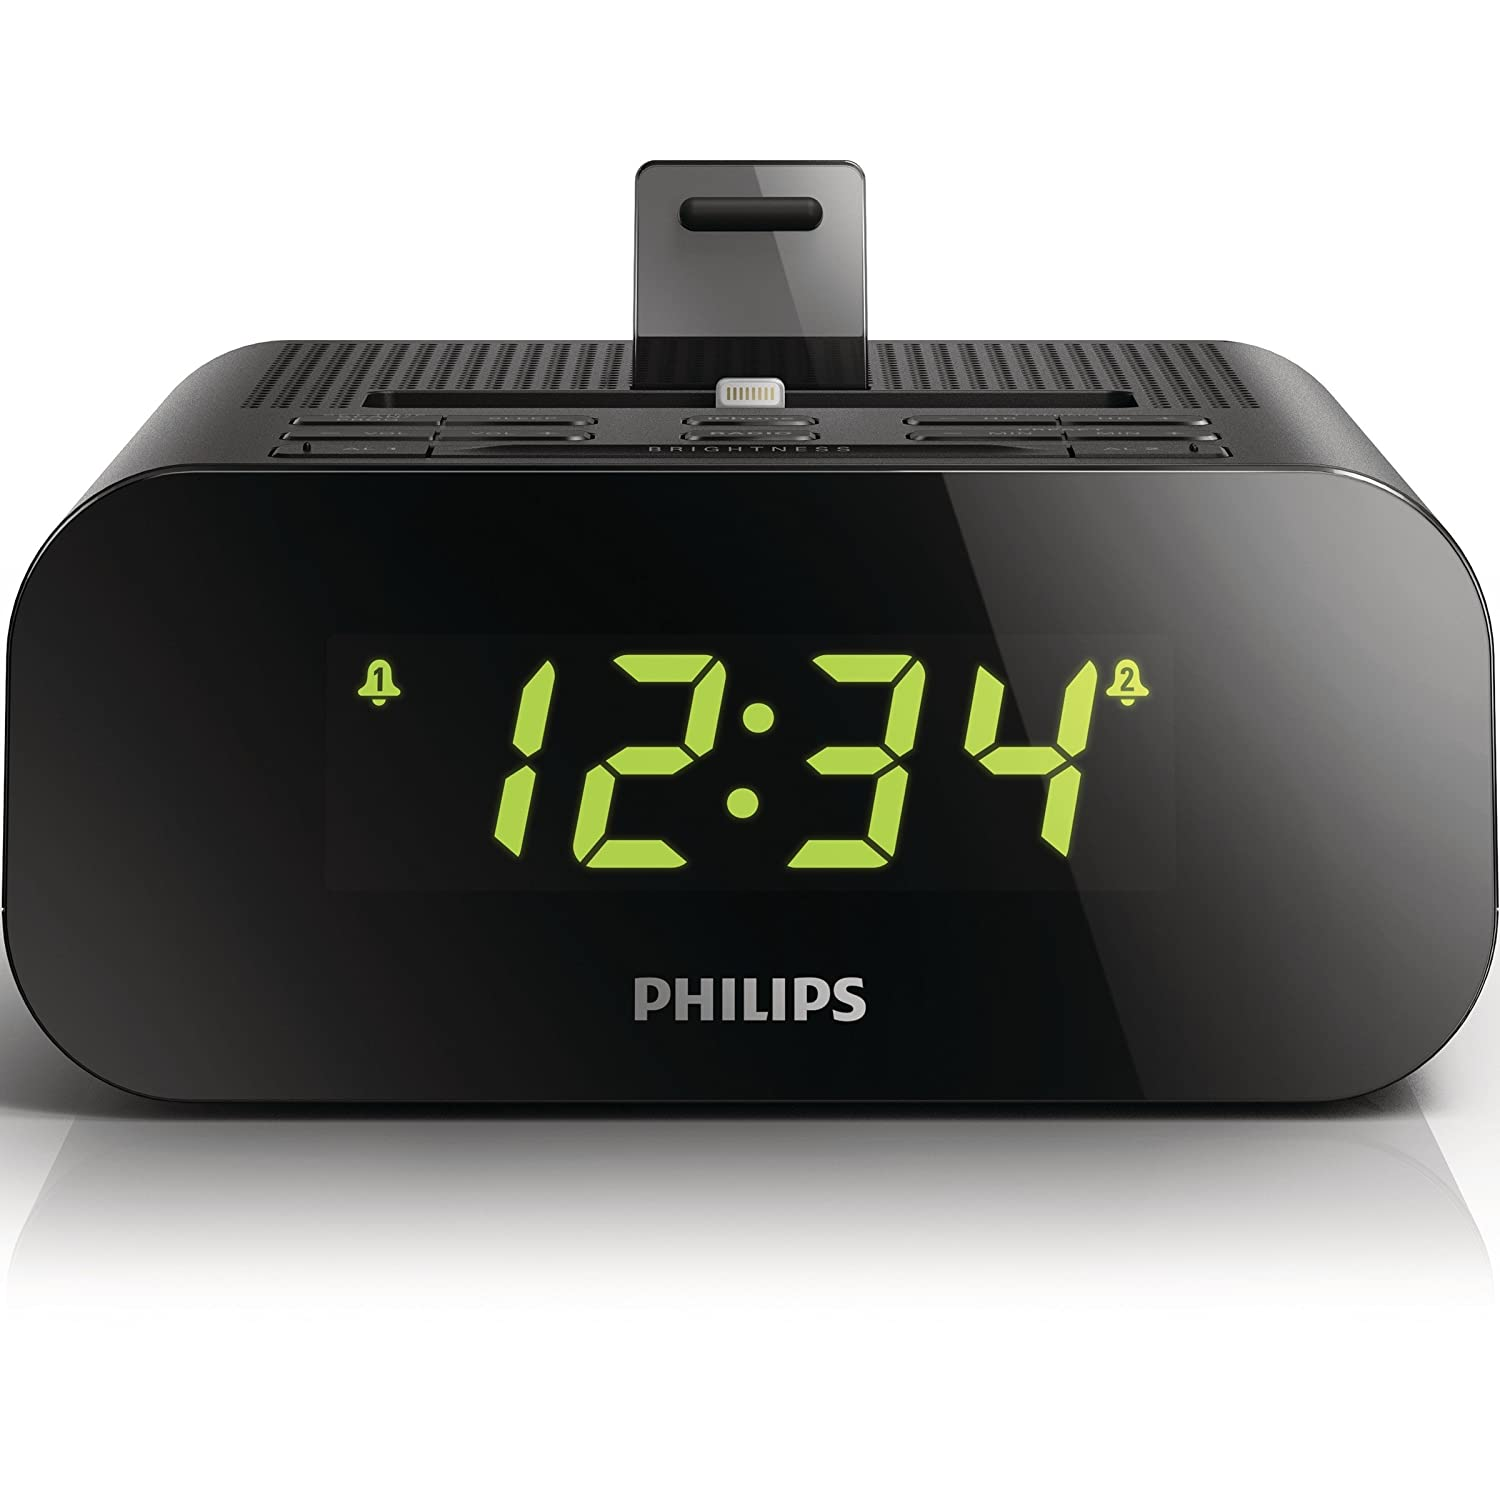 Philips AJ3275D - Radiodespertador con dock Lightning (iPhone 5/iPod 7), Negro (importado): Amazon.es: Electrónica